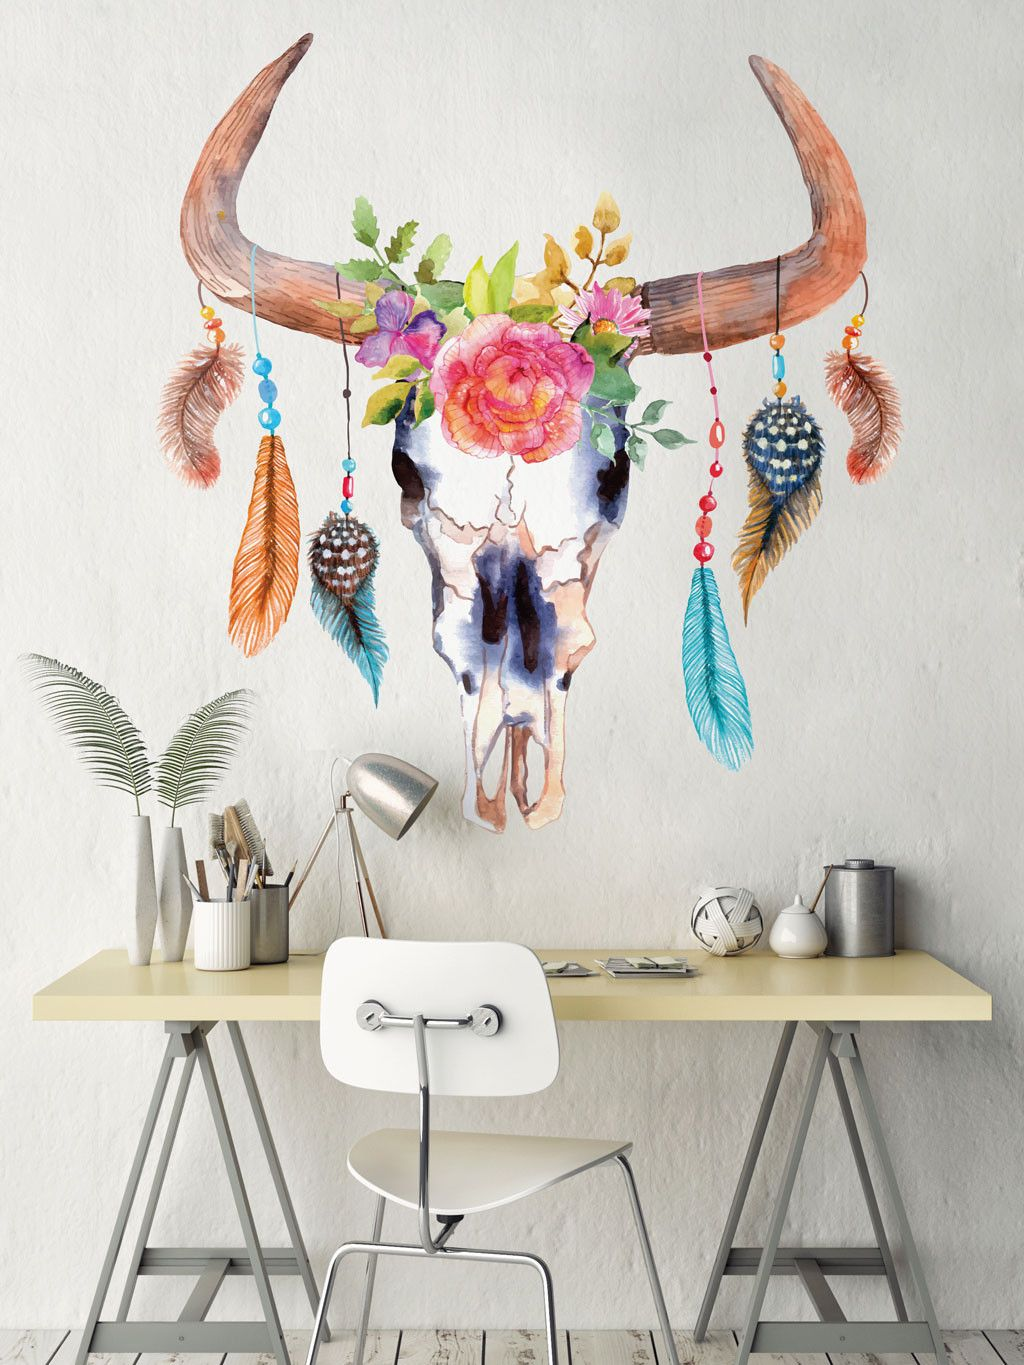 This Chic Cow Skull Decor Will Add Color And Cl To Your Walls 1 Cutout Decal Of A Bull With Flowers Feathers Available In 3